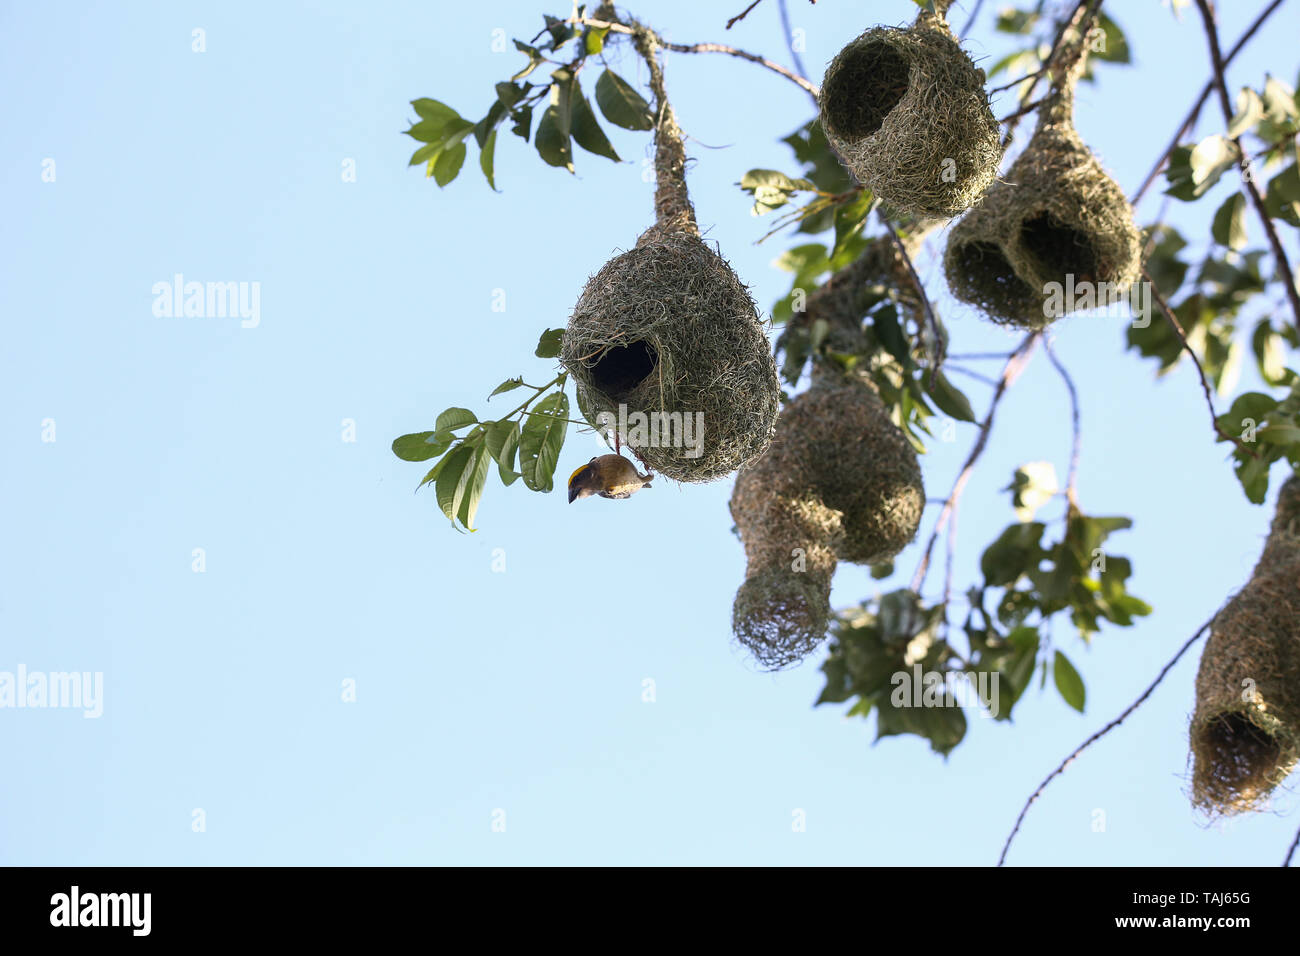 Kathmandu, Other, Nepal. Kathmandu, Other, Nepal. 25th May, 2019. A Baya weaver bird seen weaving its nest in a tree.Weavers are known for their elaborately woven nests. Credit: Sunil Pradhan/SOPA Images/ZUMA Wire/Alamy Live News - Stock Image